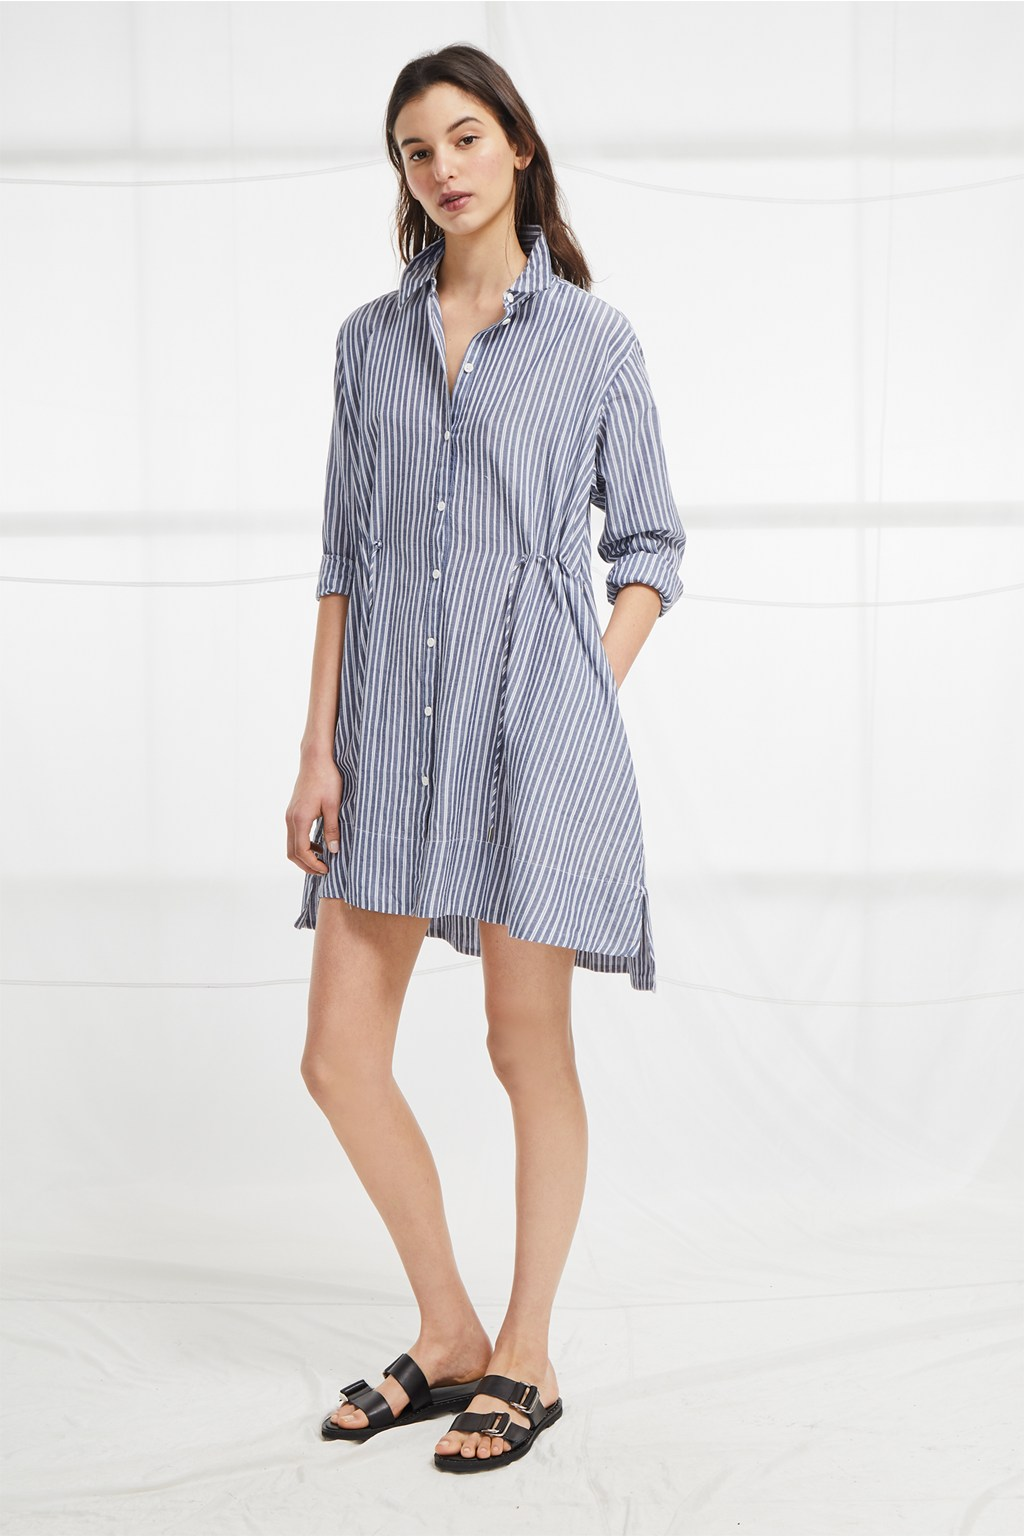 702609a669 Tatus Stripe Drawstring Shirt Dress. loading images.